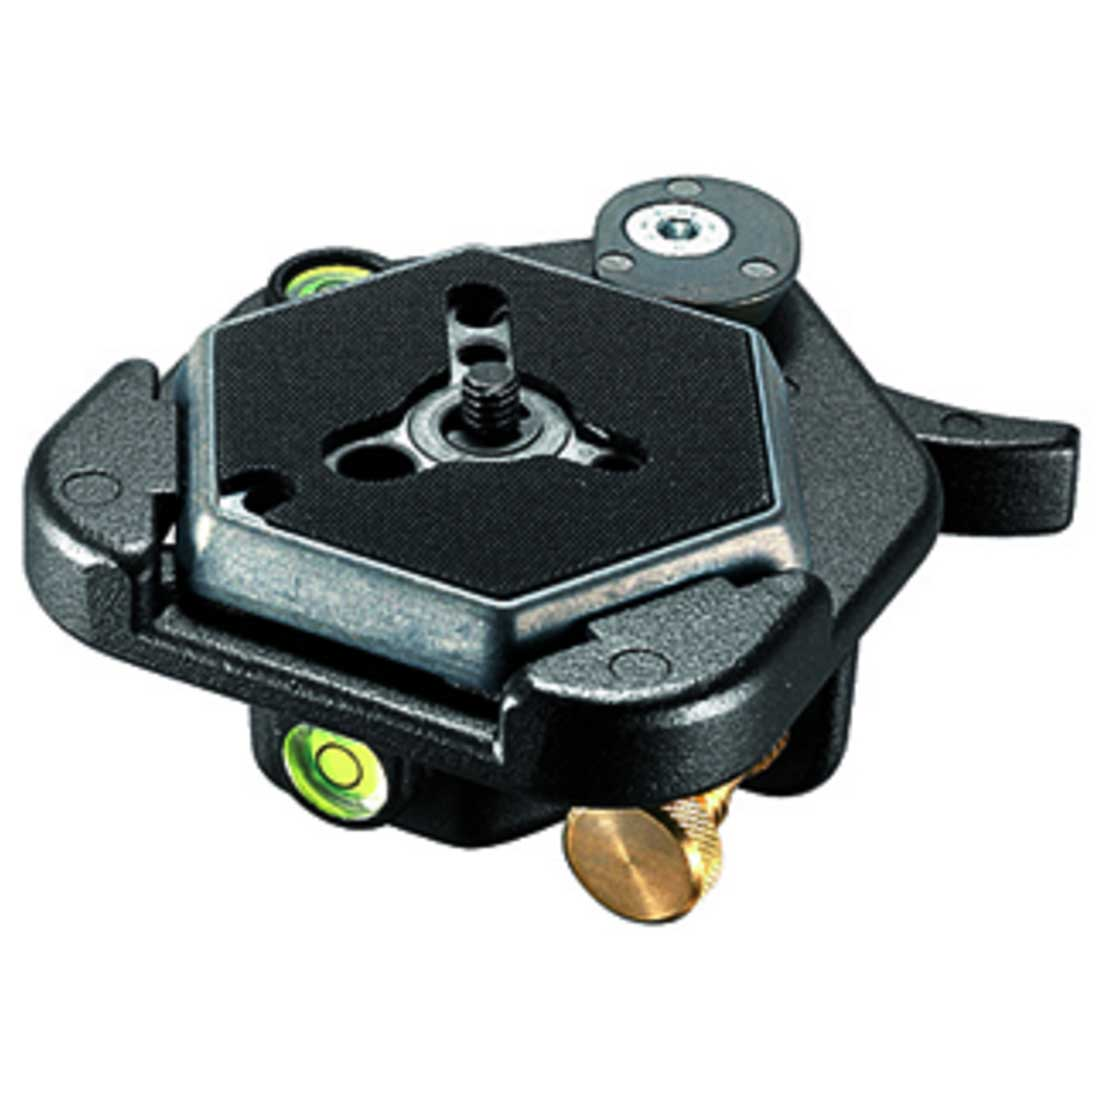 Adapter Manfrotto 625